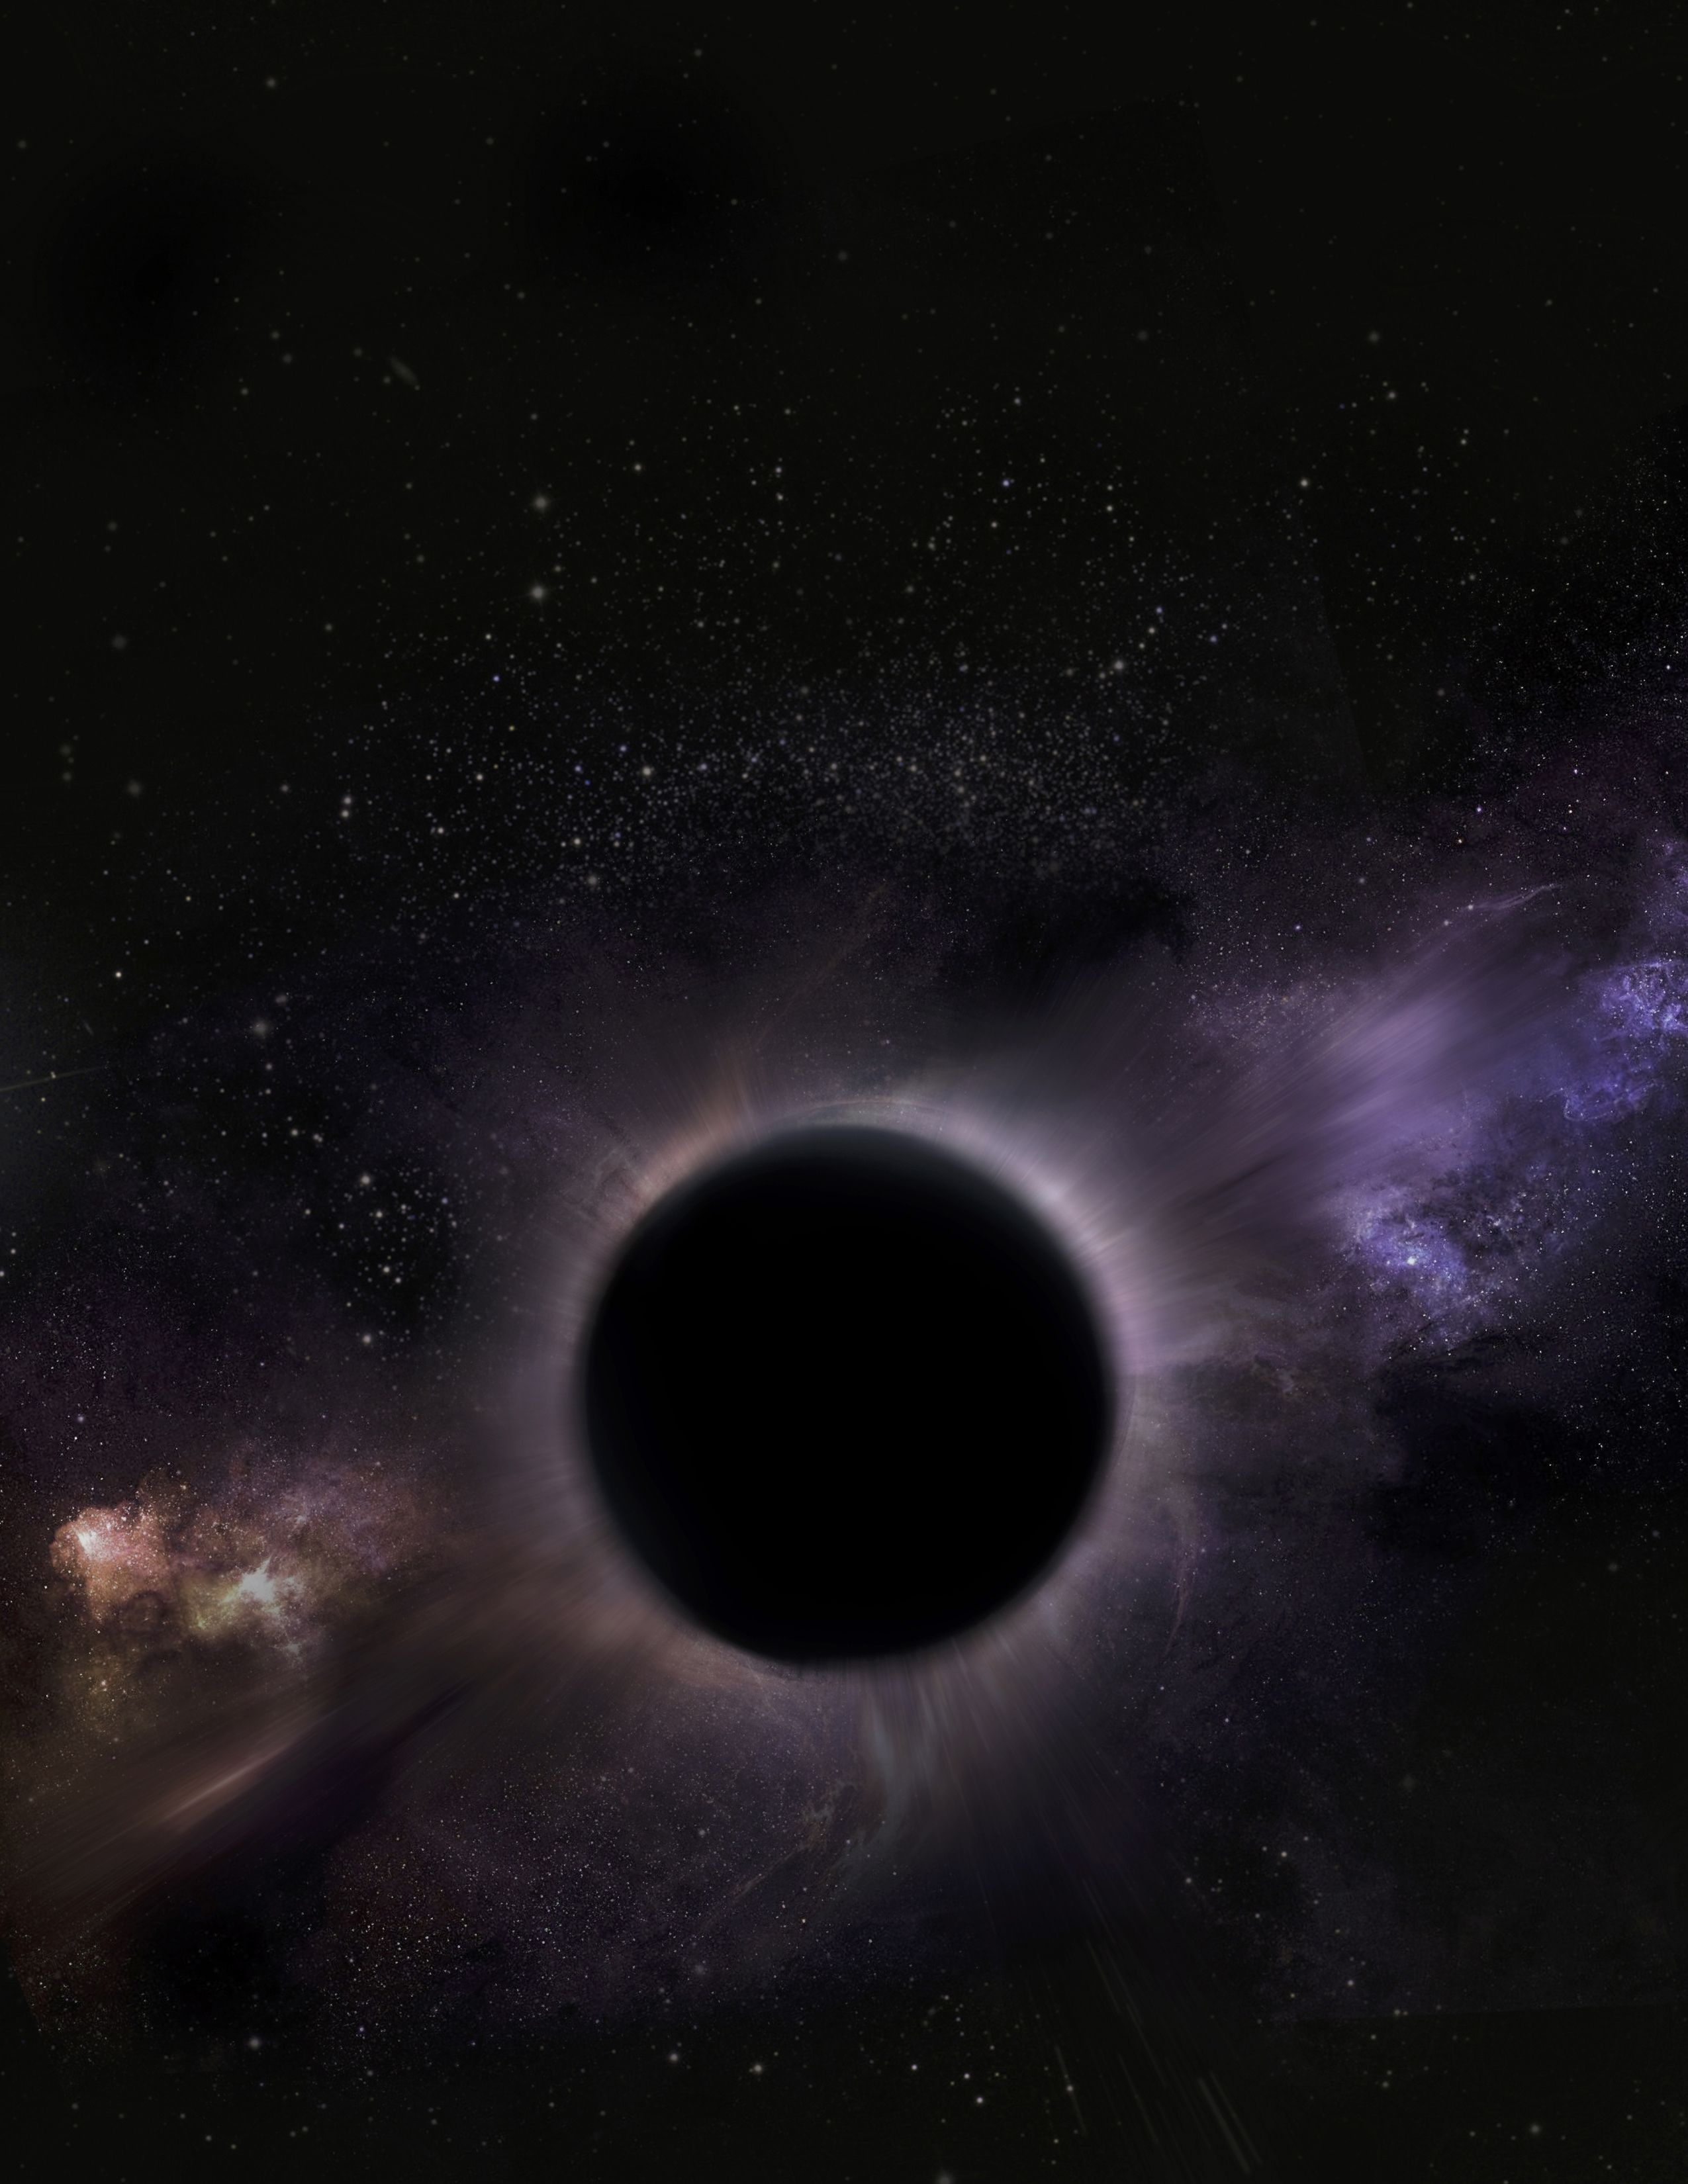 7 weird facts about black holes mnn mother nature network - HD1920×1735